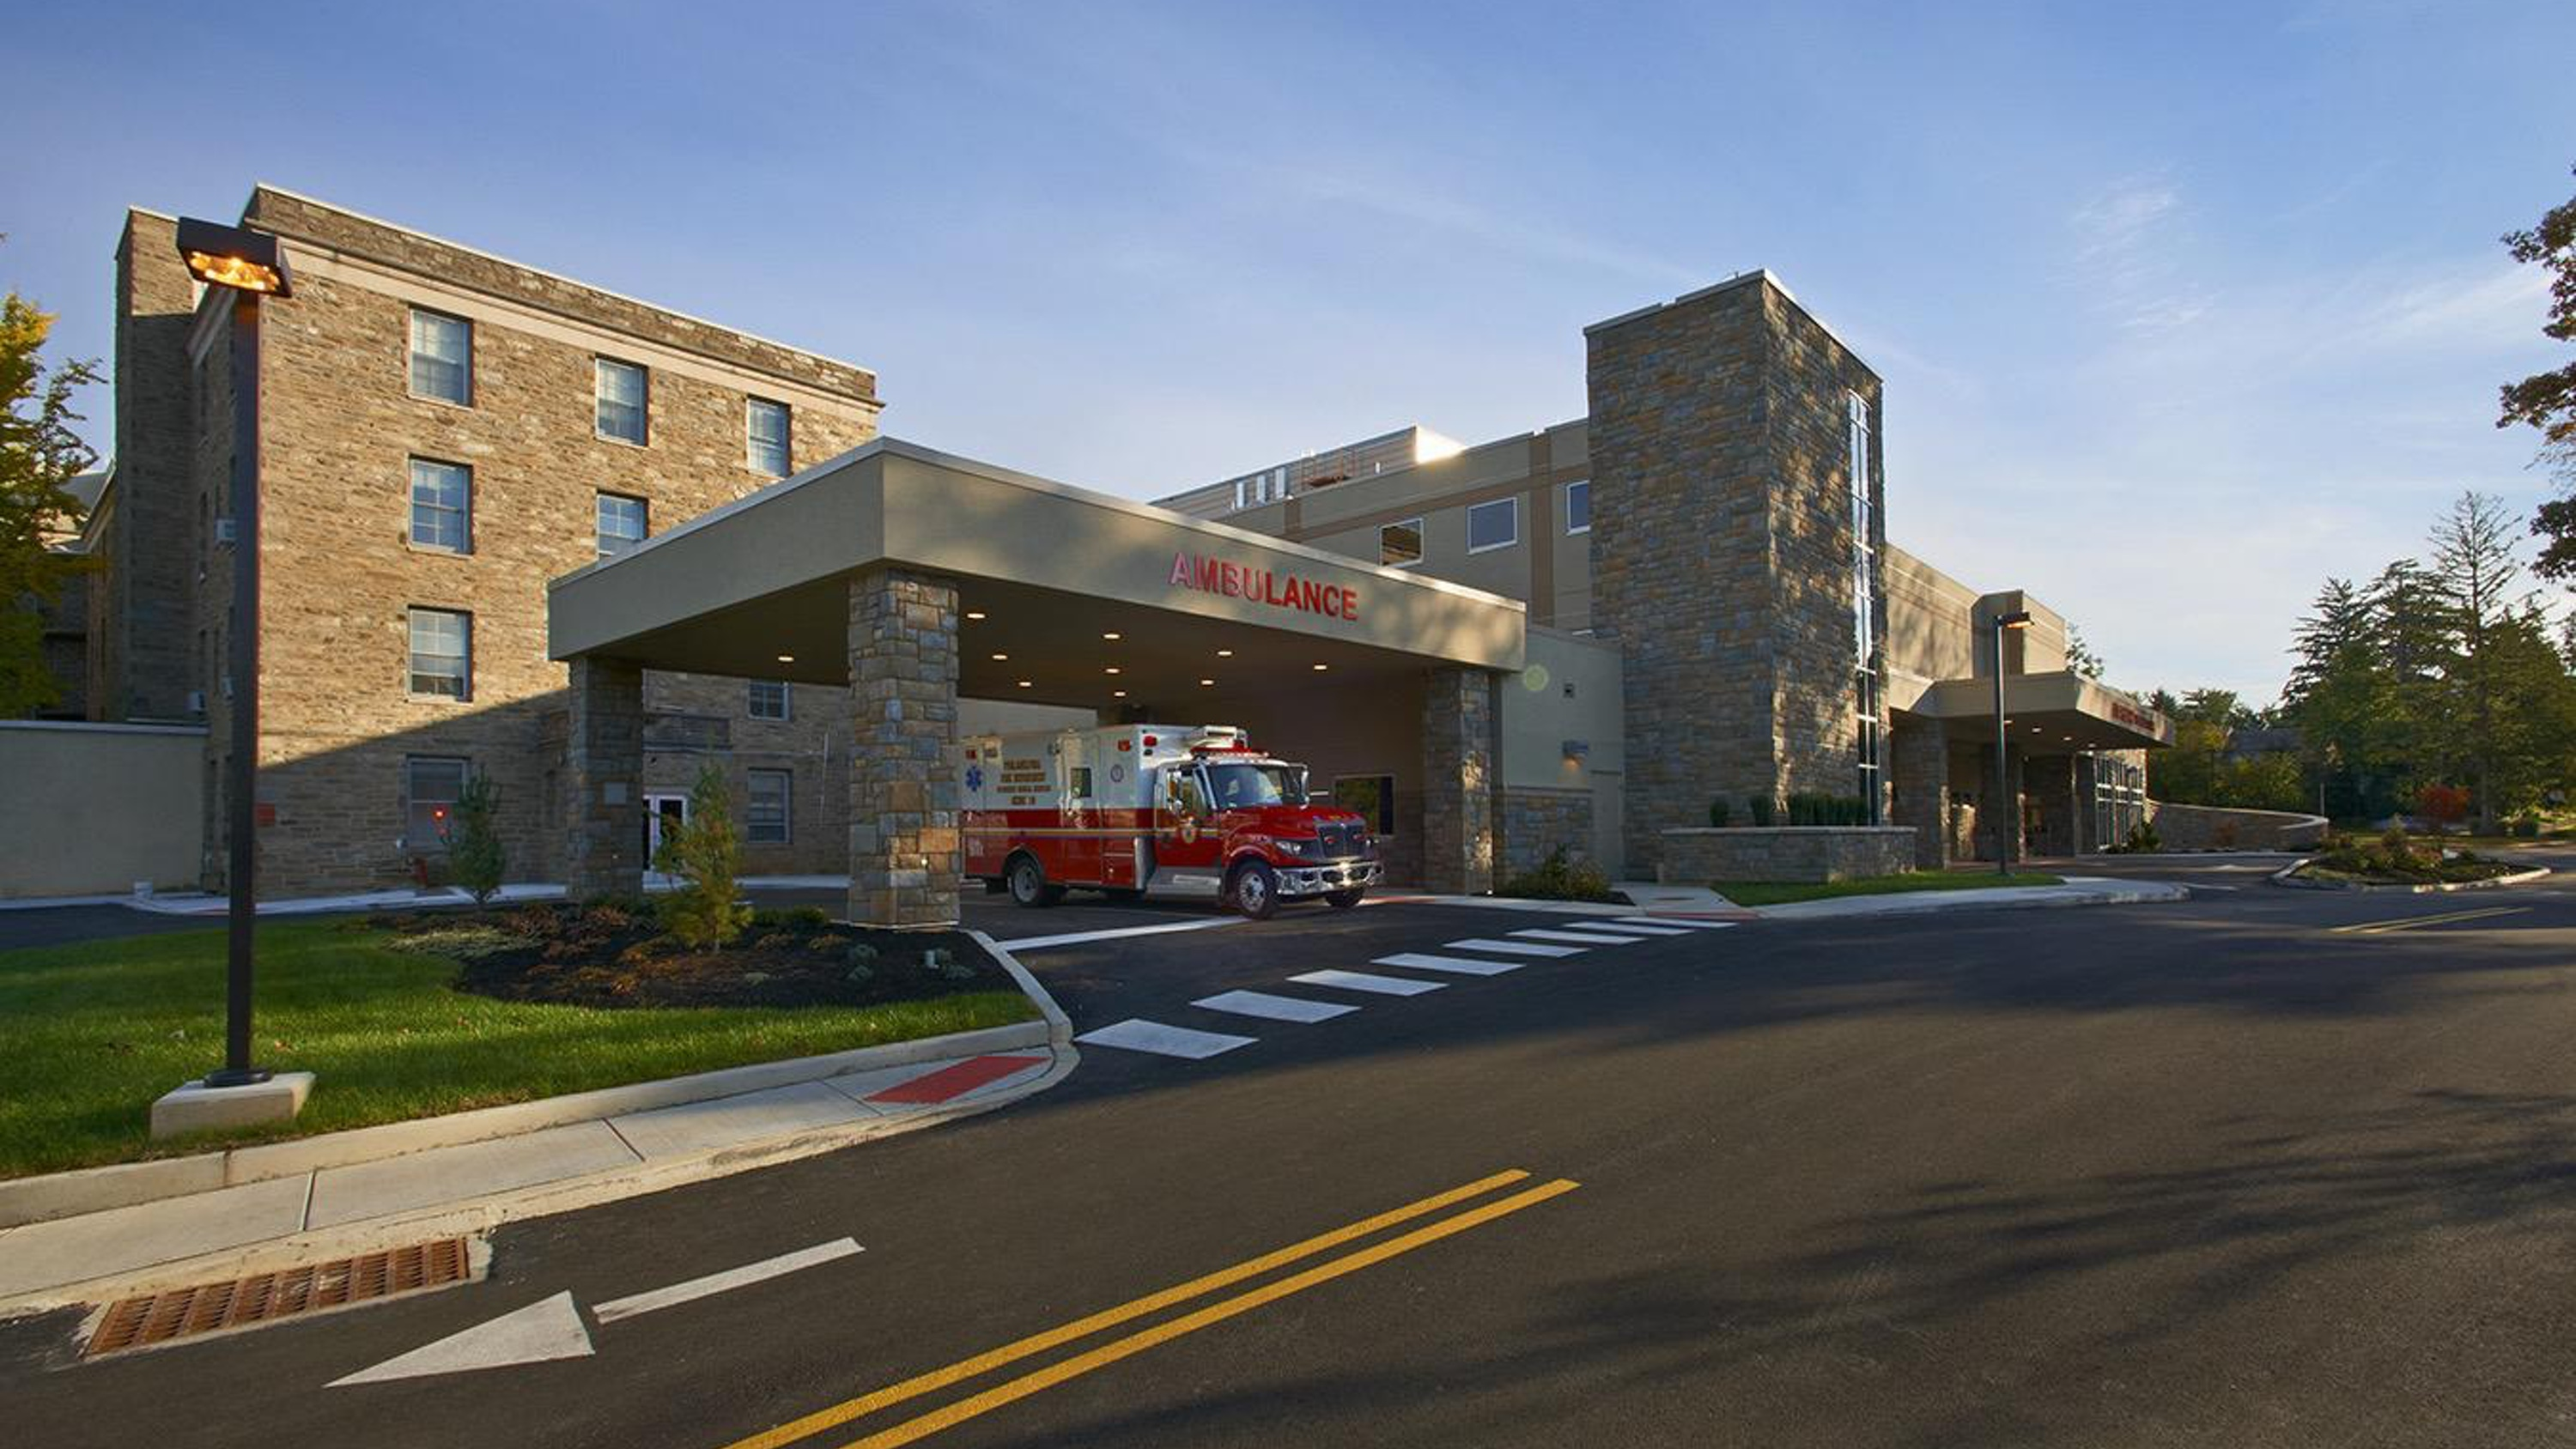 Chestnut hill hospital4